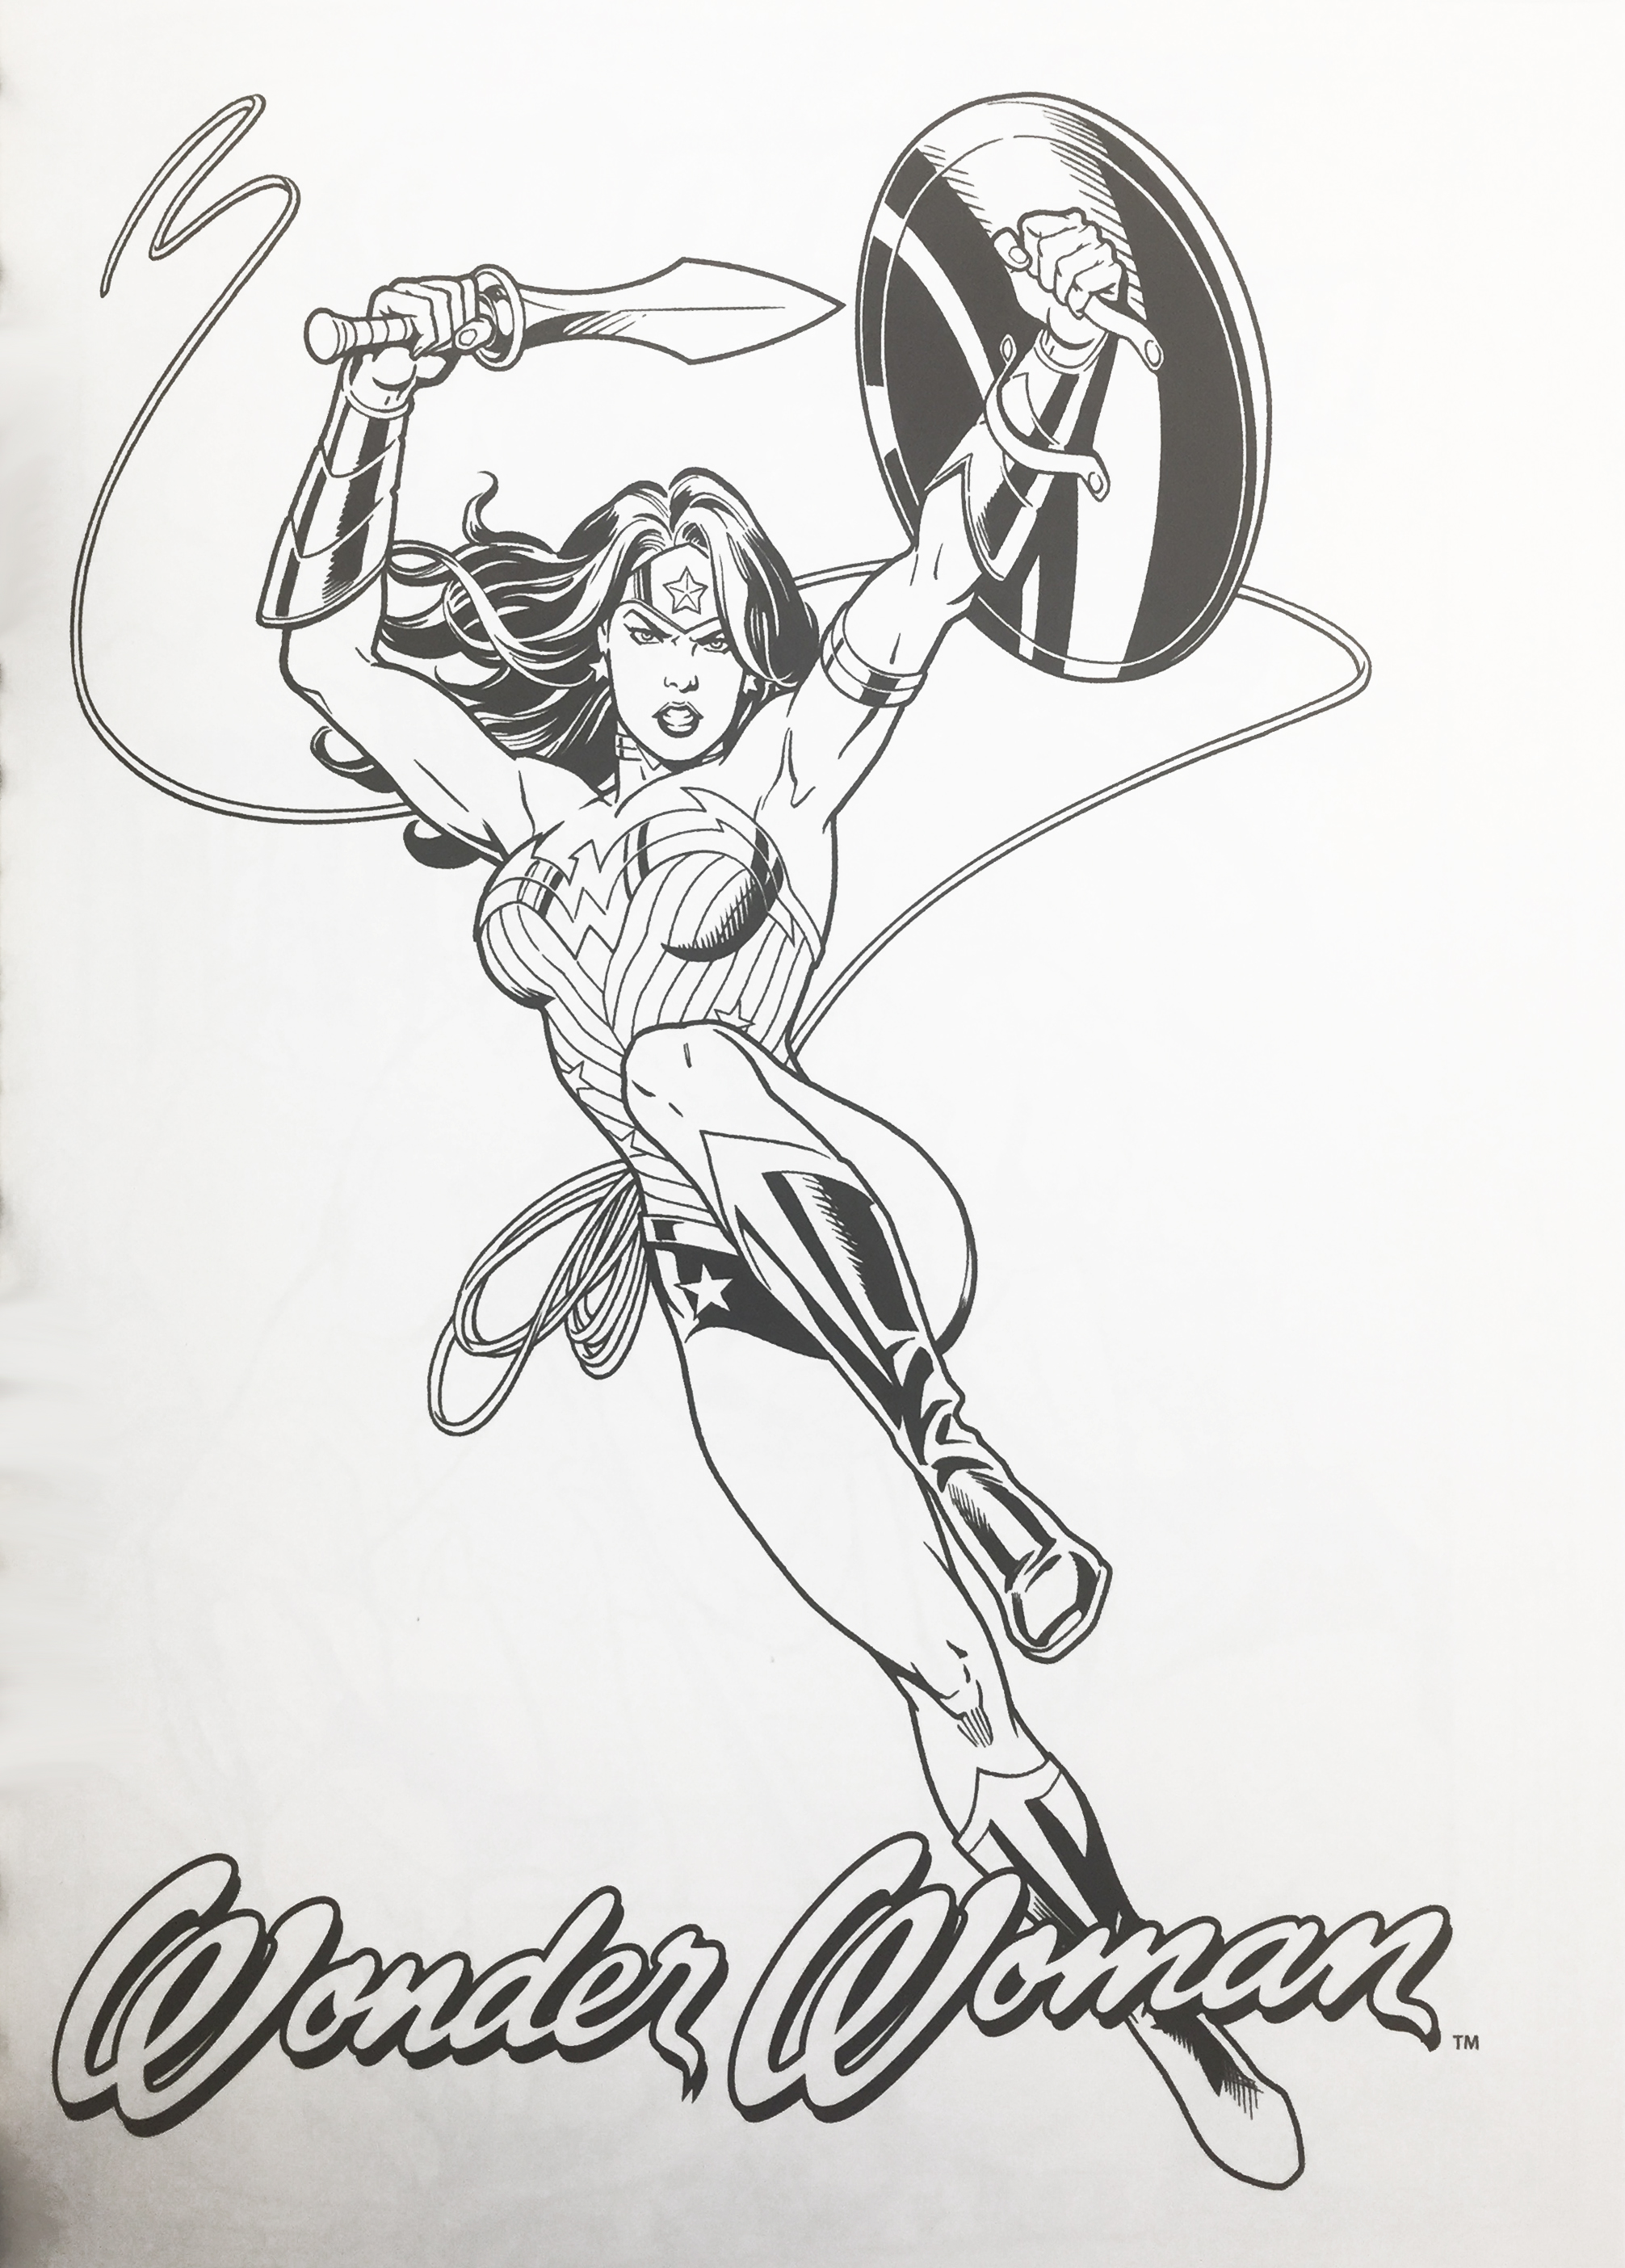 Wonder Woman Coloring Book cover page in black and white